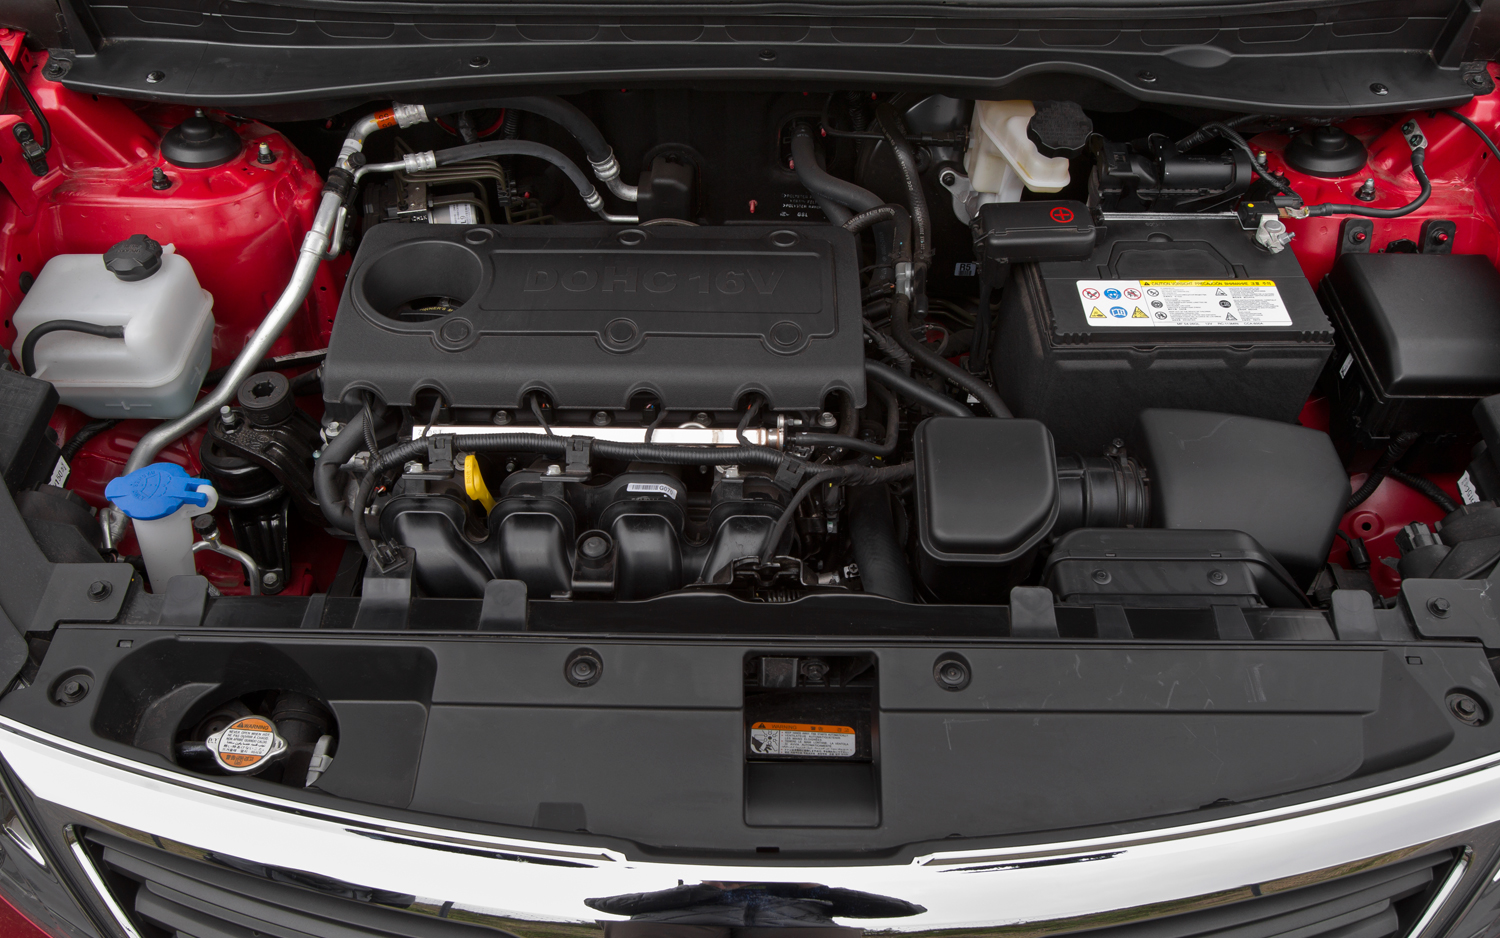 KIA SPORTAGE engine